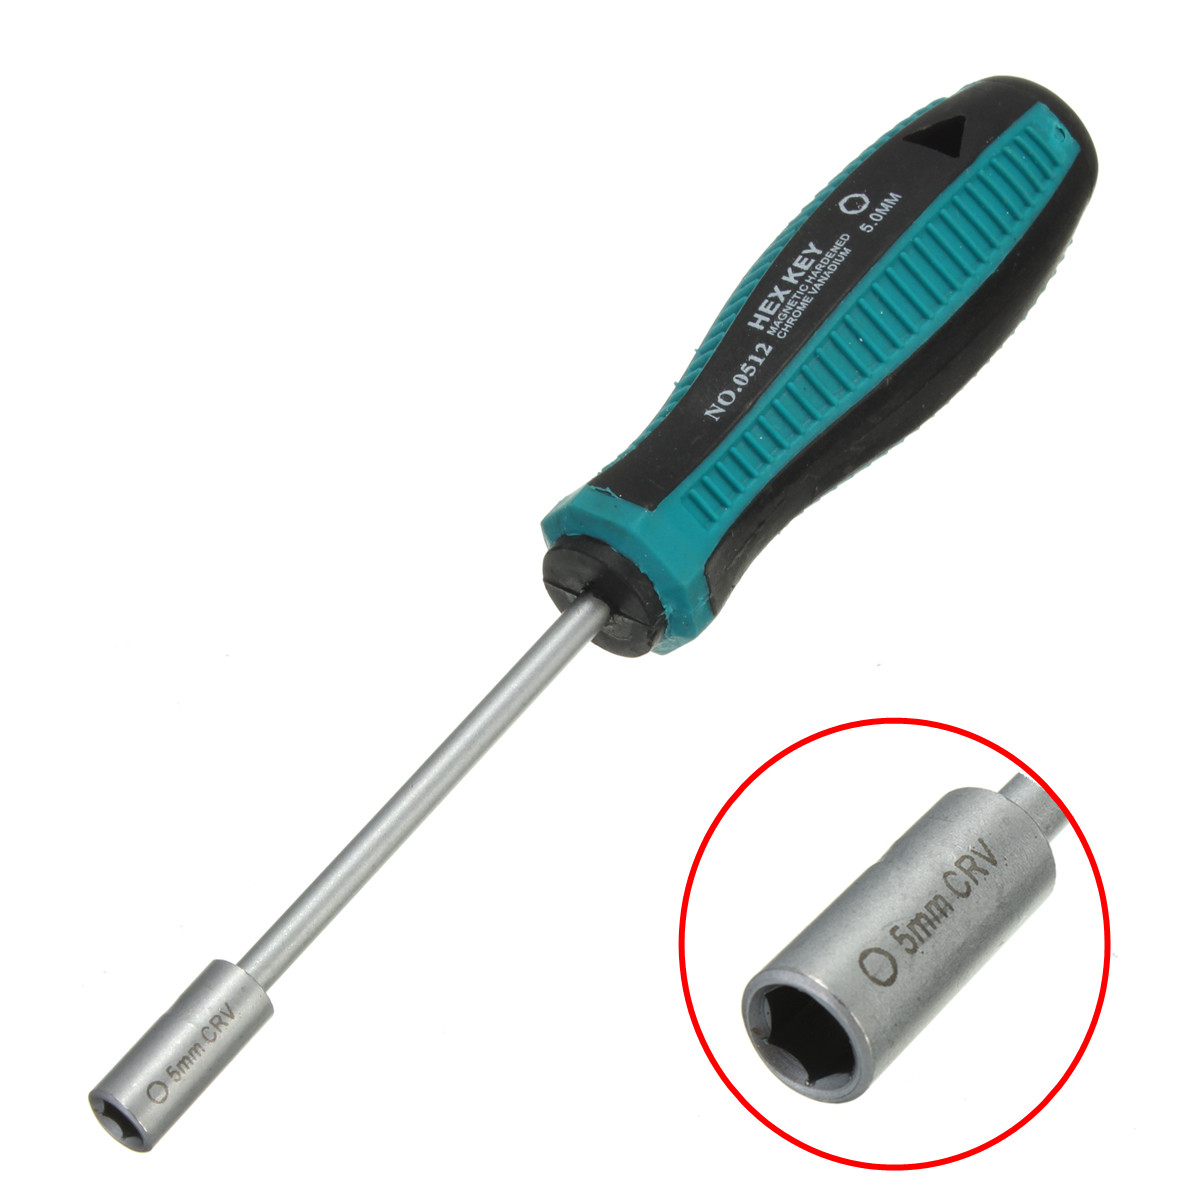 Hex Screwdriver